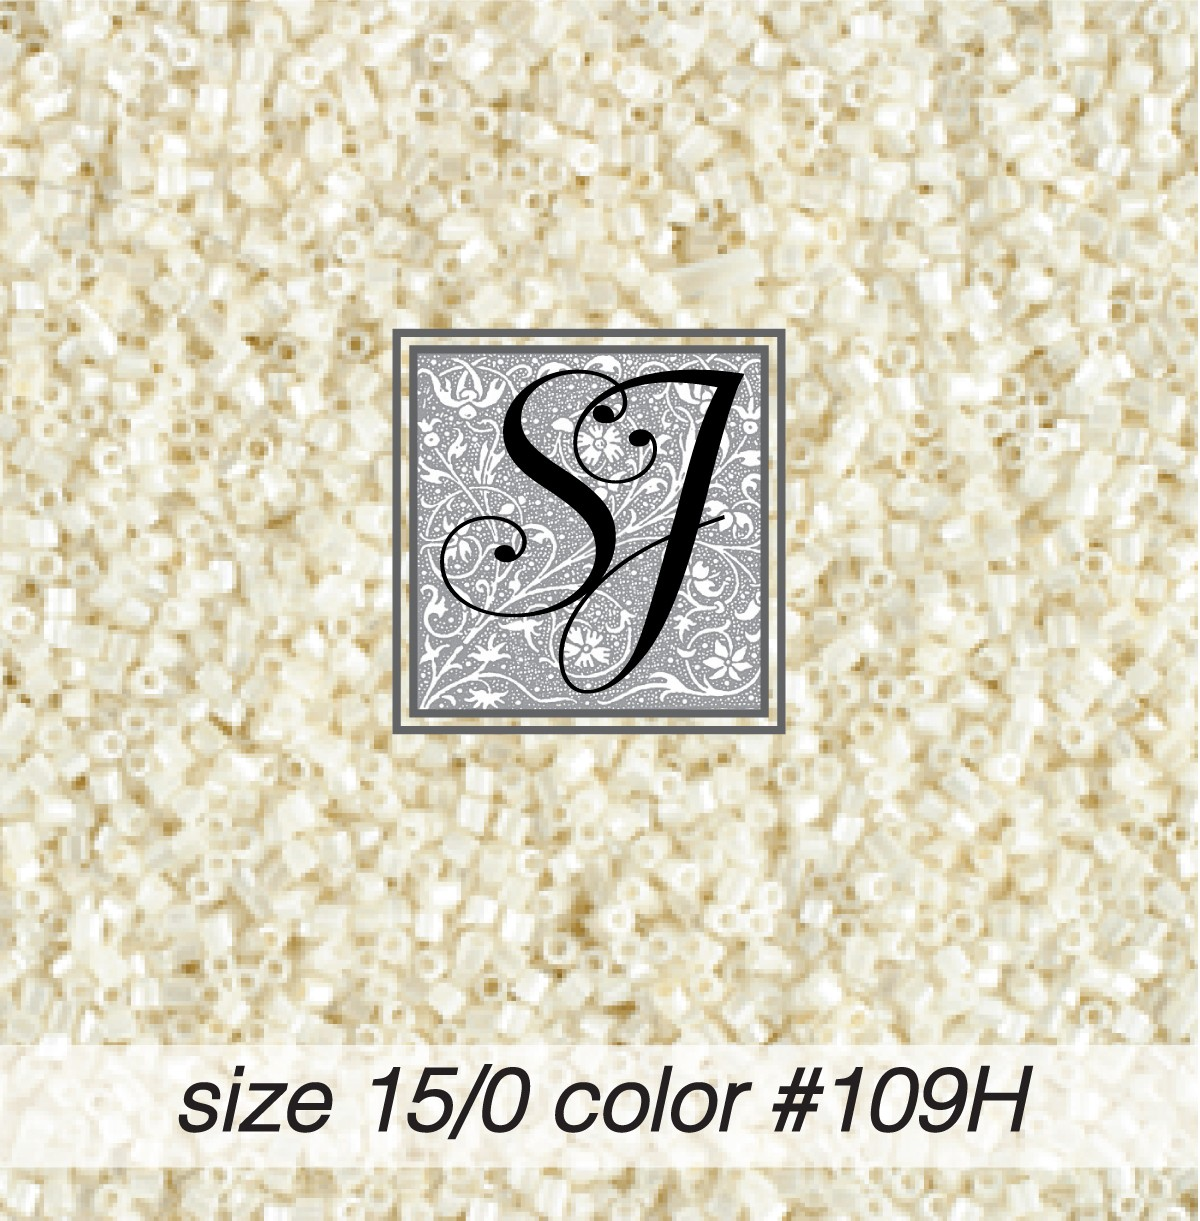 109H Antique White Pearl Hex-C 15/0 Seed Bead